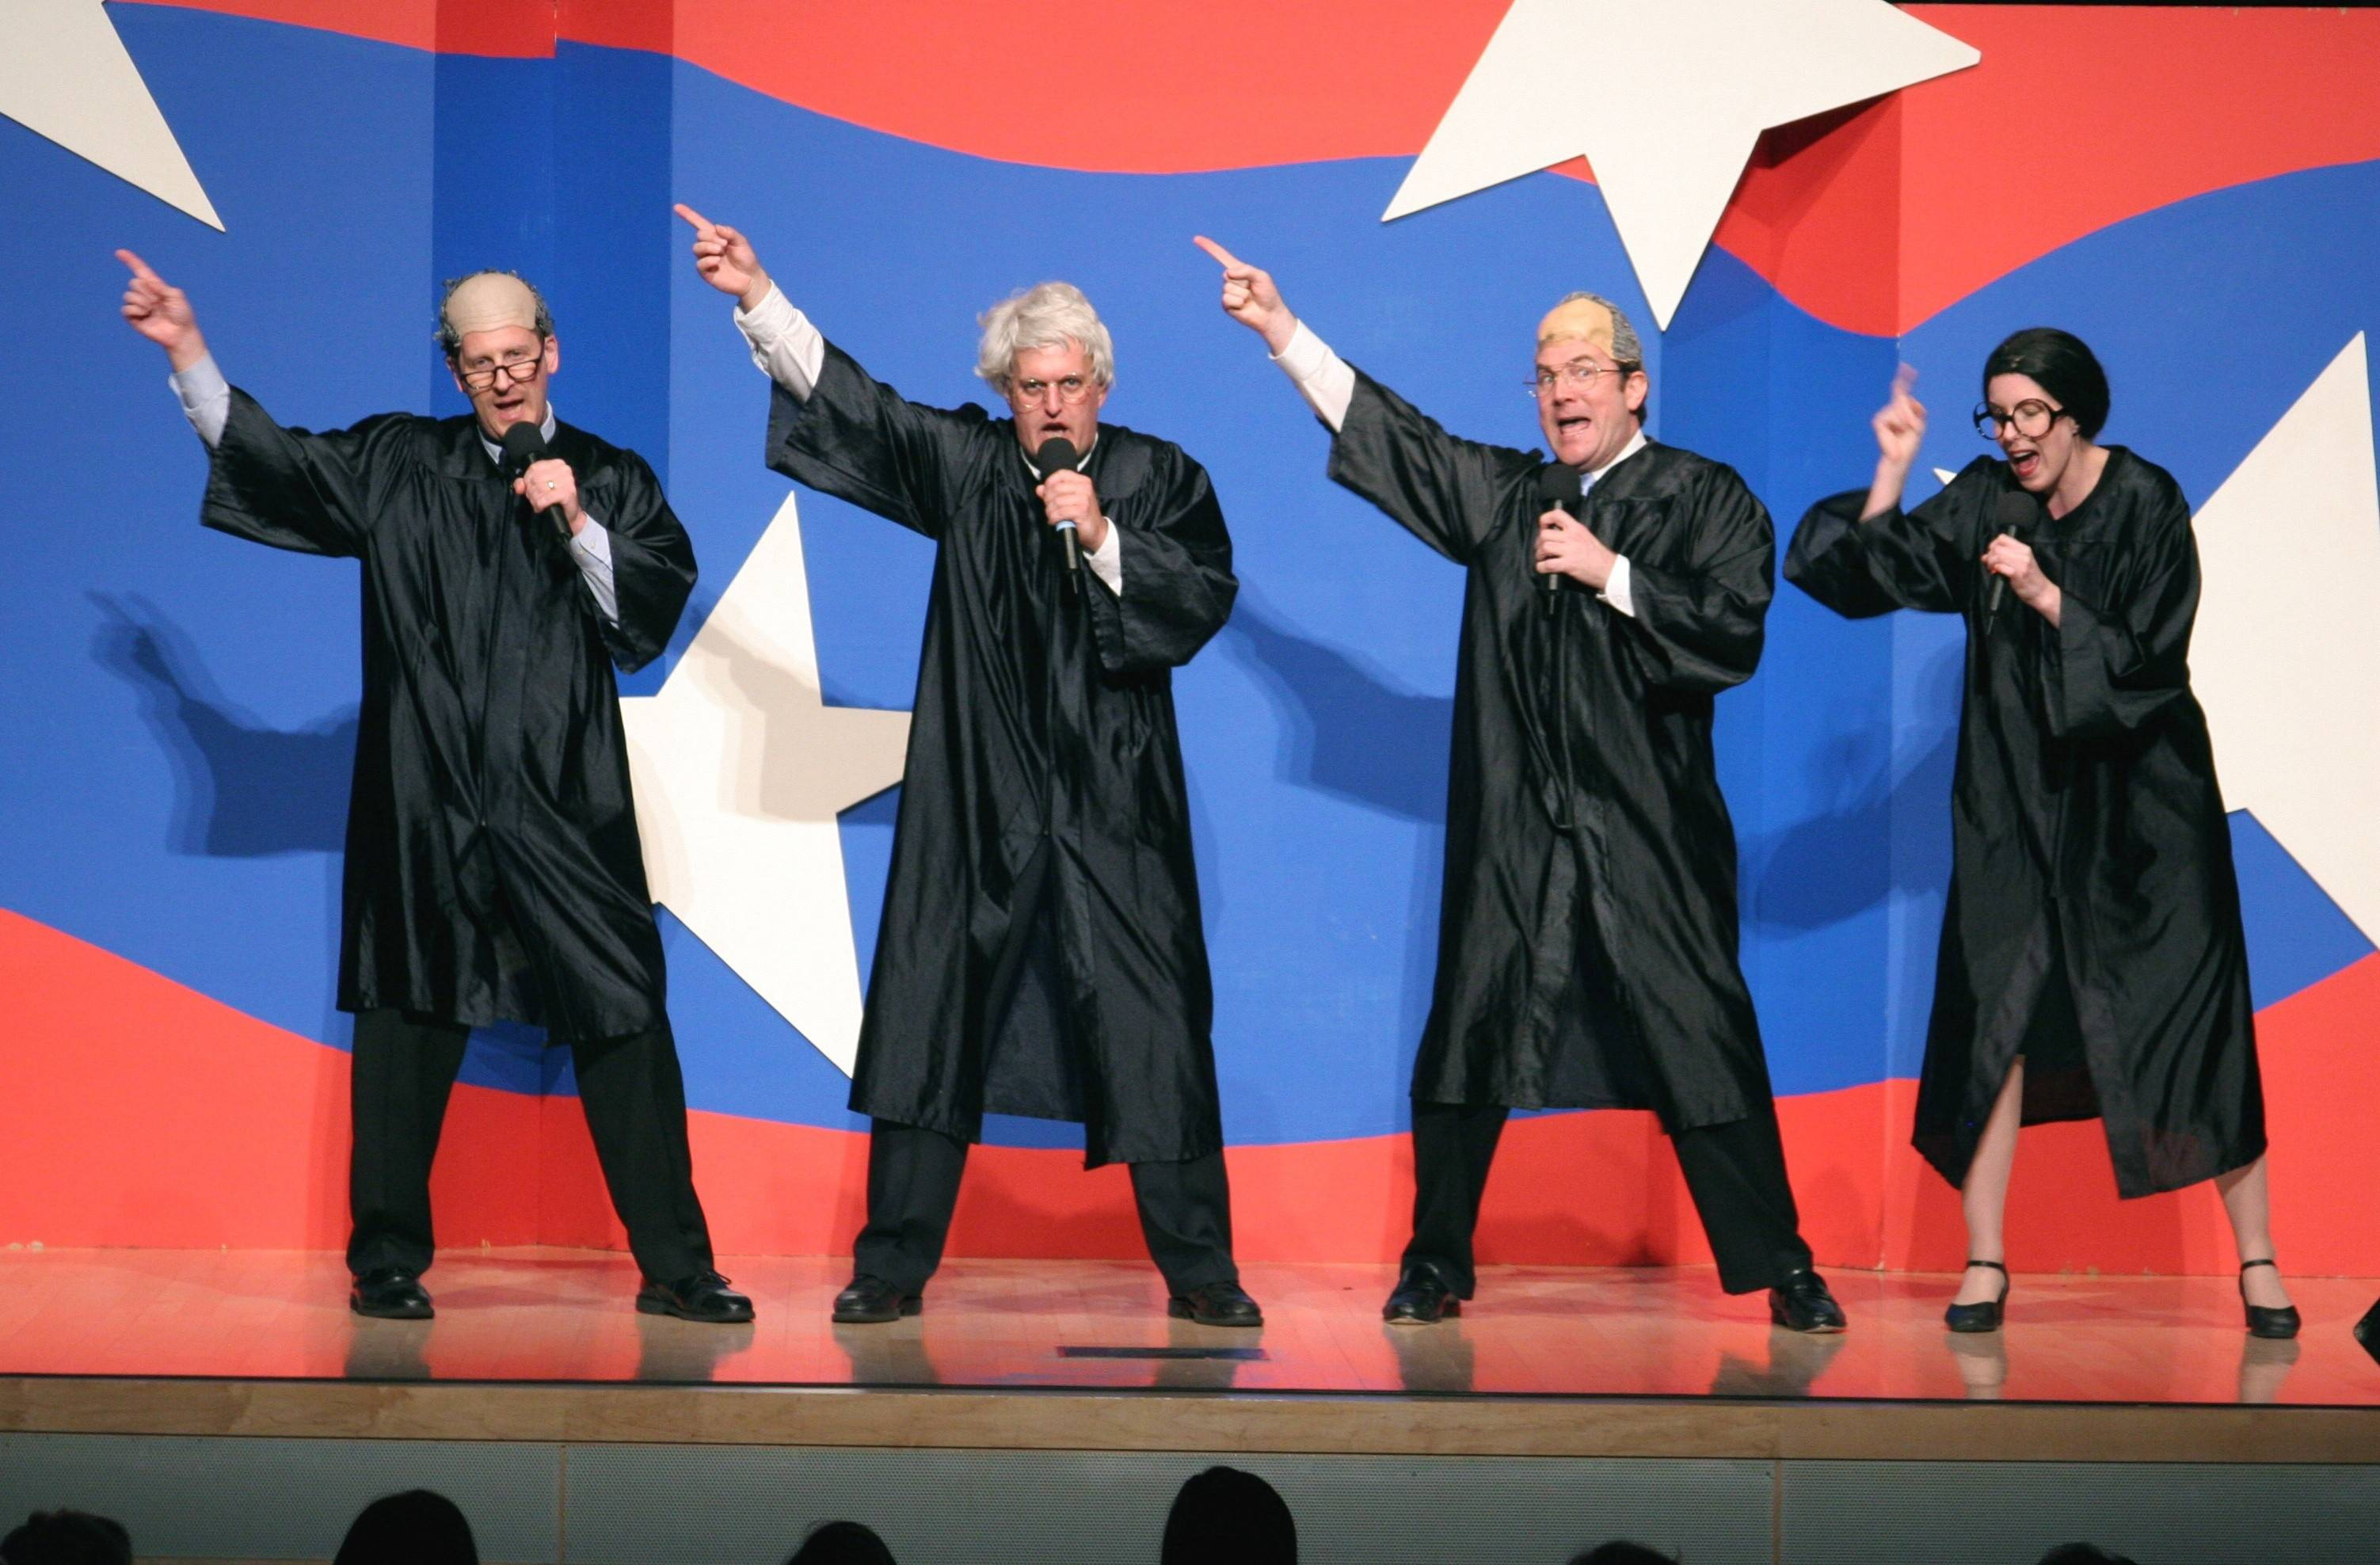 The Capitol Steps comedy troupe will perform Wednesday, Oct. 22, at the Genesee Theatre in Waukegan.